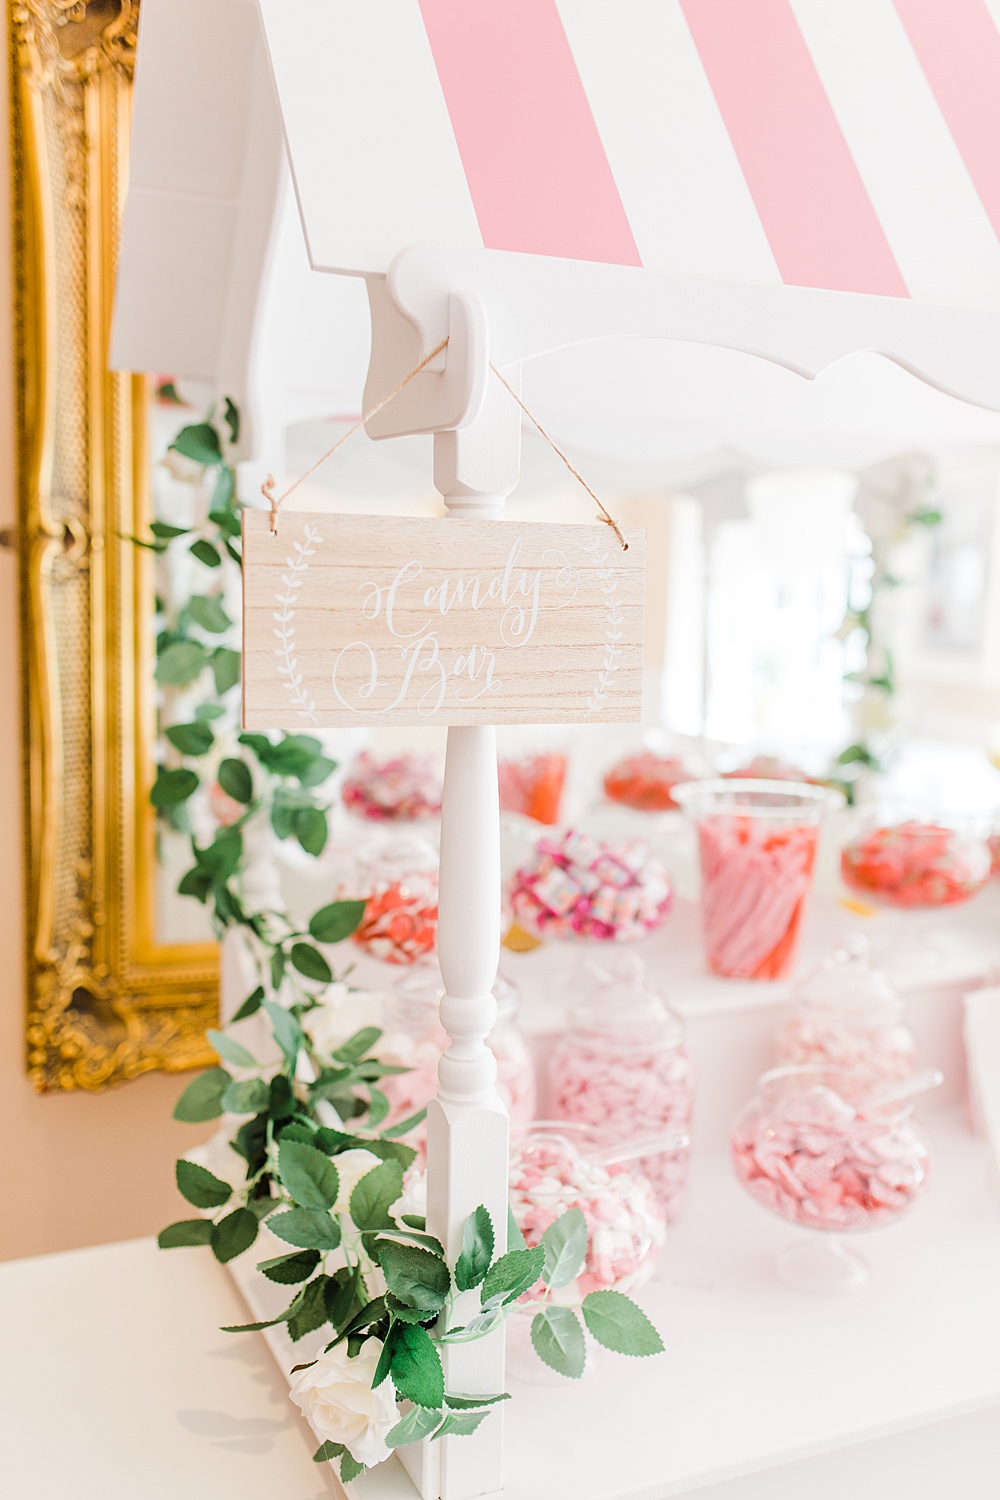 Sweets Sweetie Cart Table Station Sheene Mill Wedding Terri & Lori Photography and Film Studio